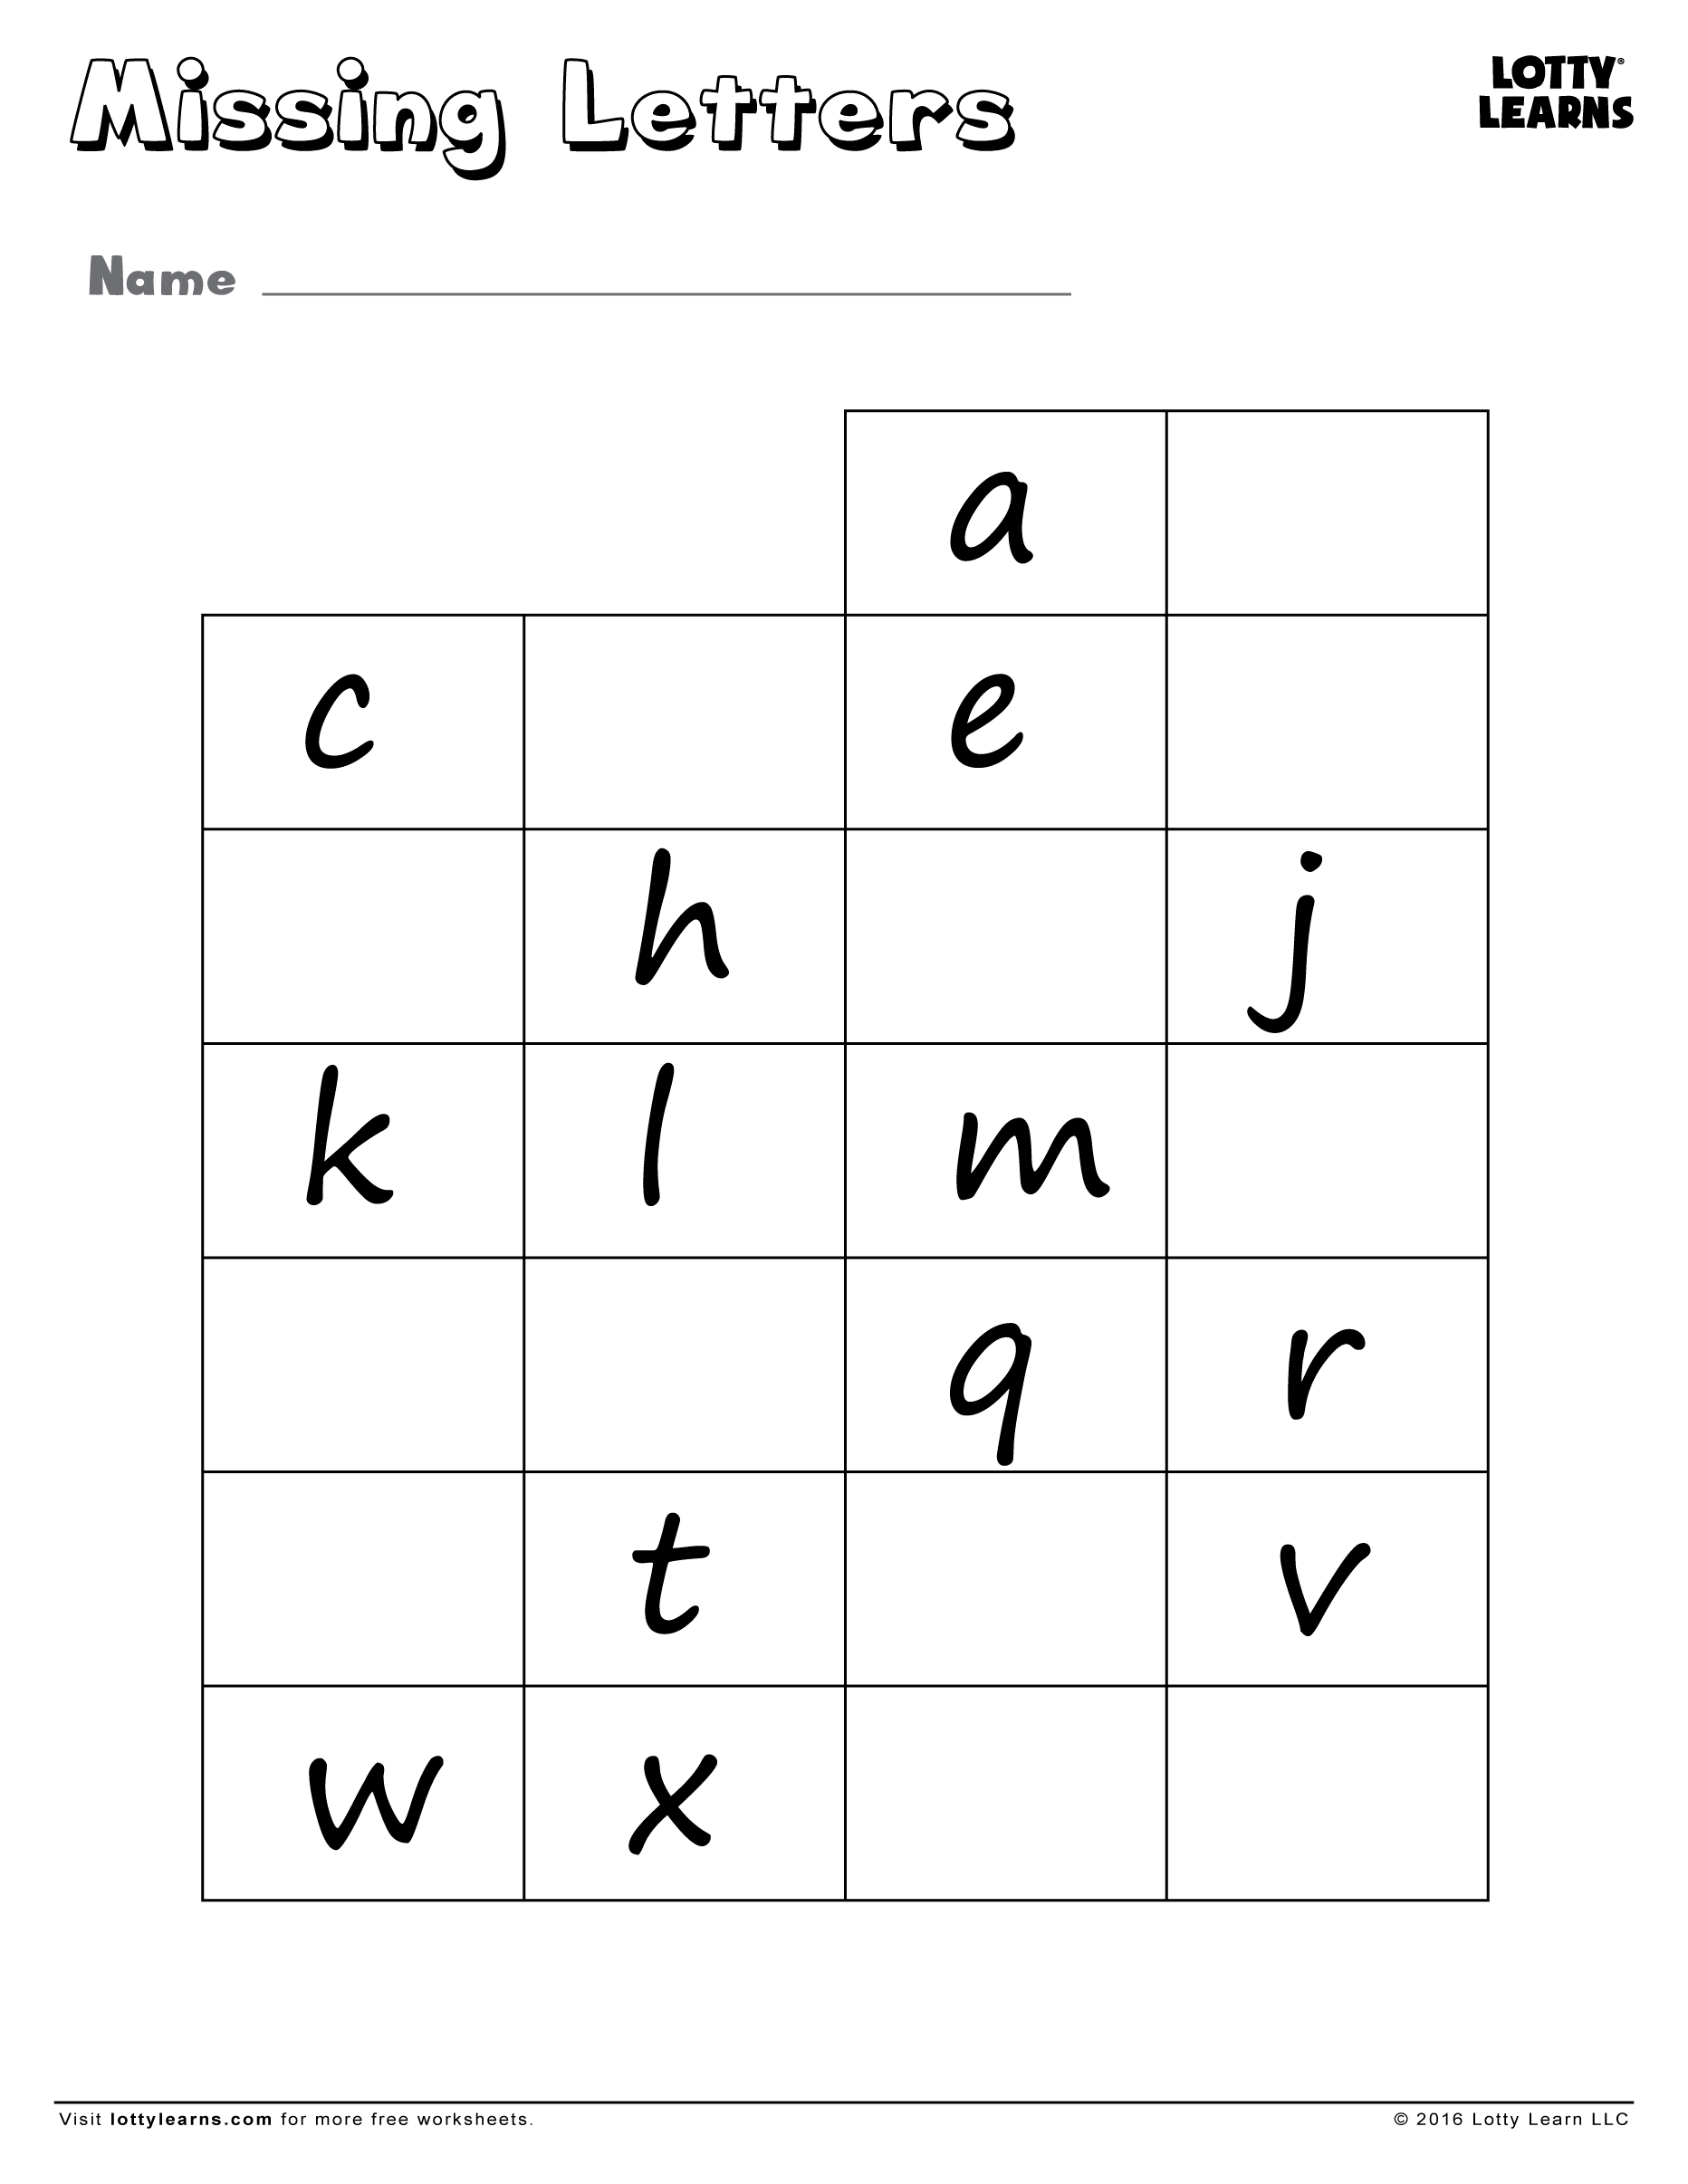 Missing Lowercase Letters Lotty Learns – Learning Abc Worksheets